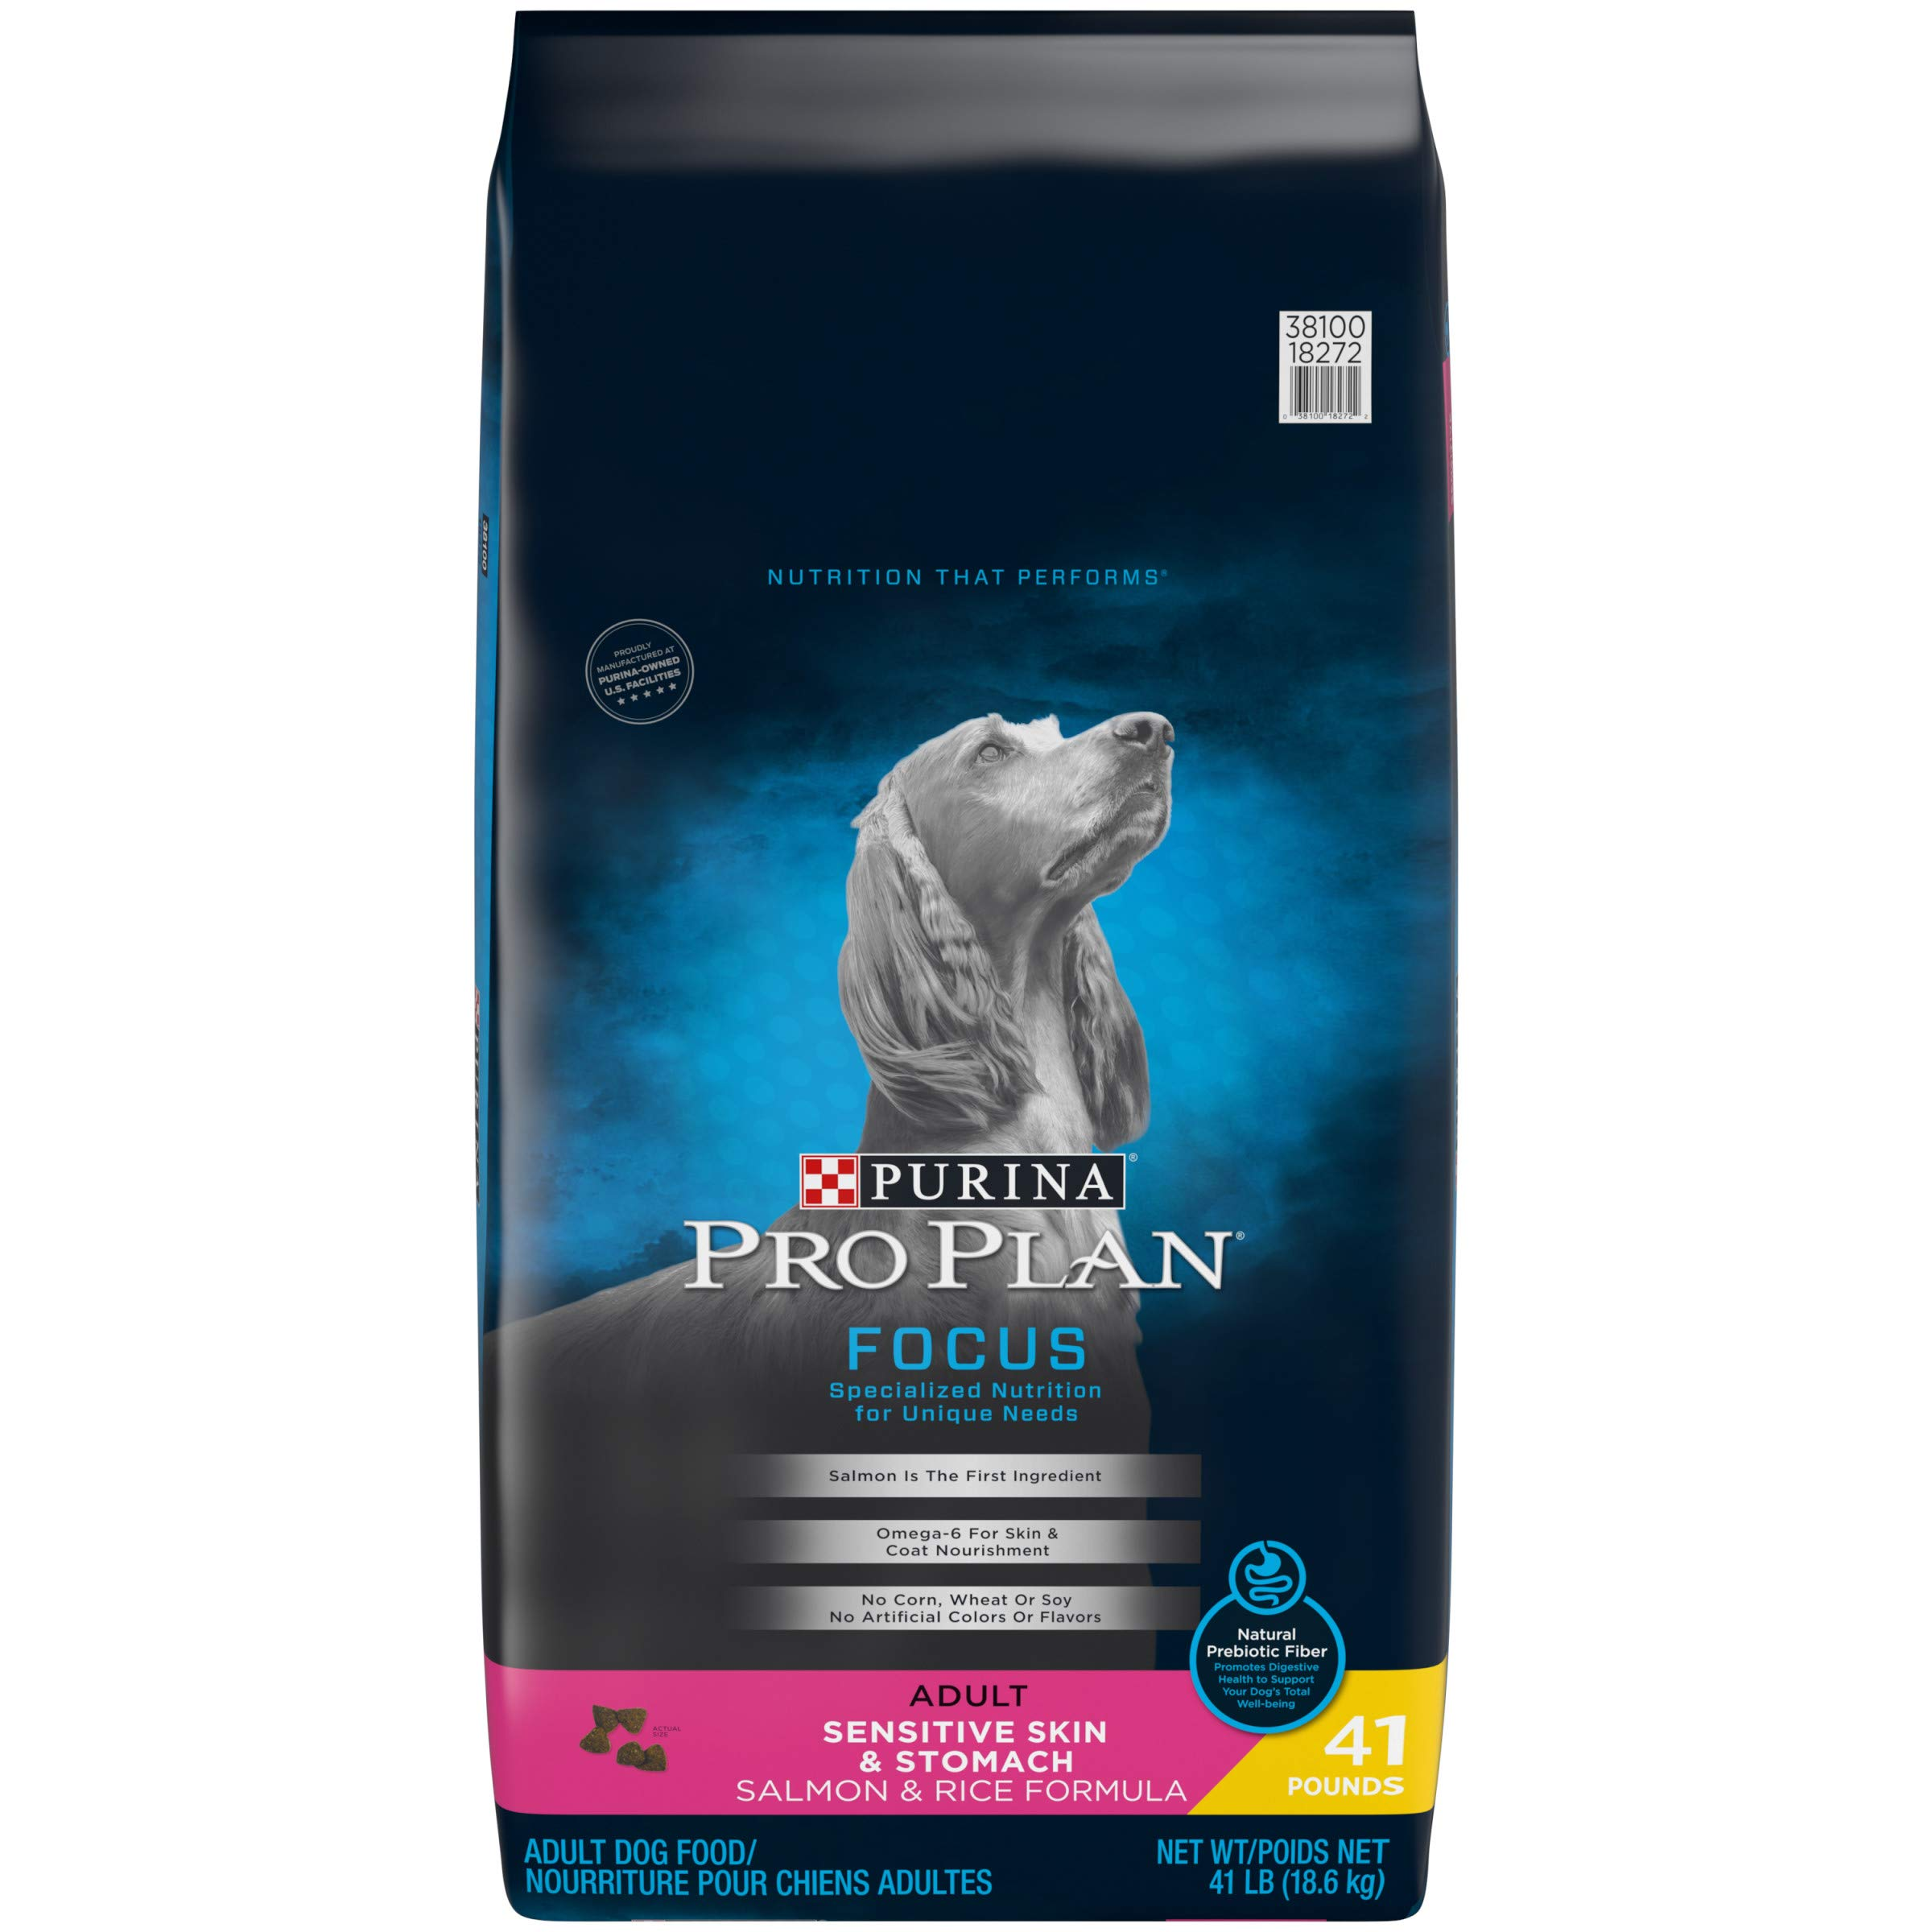 Purina Pro Plan Sensitive Stomach Dry Dog Food, FOCUS Sensitive Skin & Stomach Salmon & Rice Formula - 41 lb. Bag by Purina Pro Plan